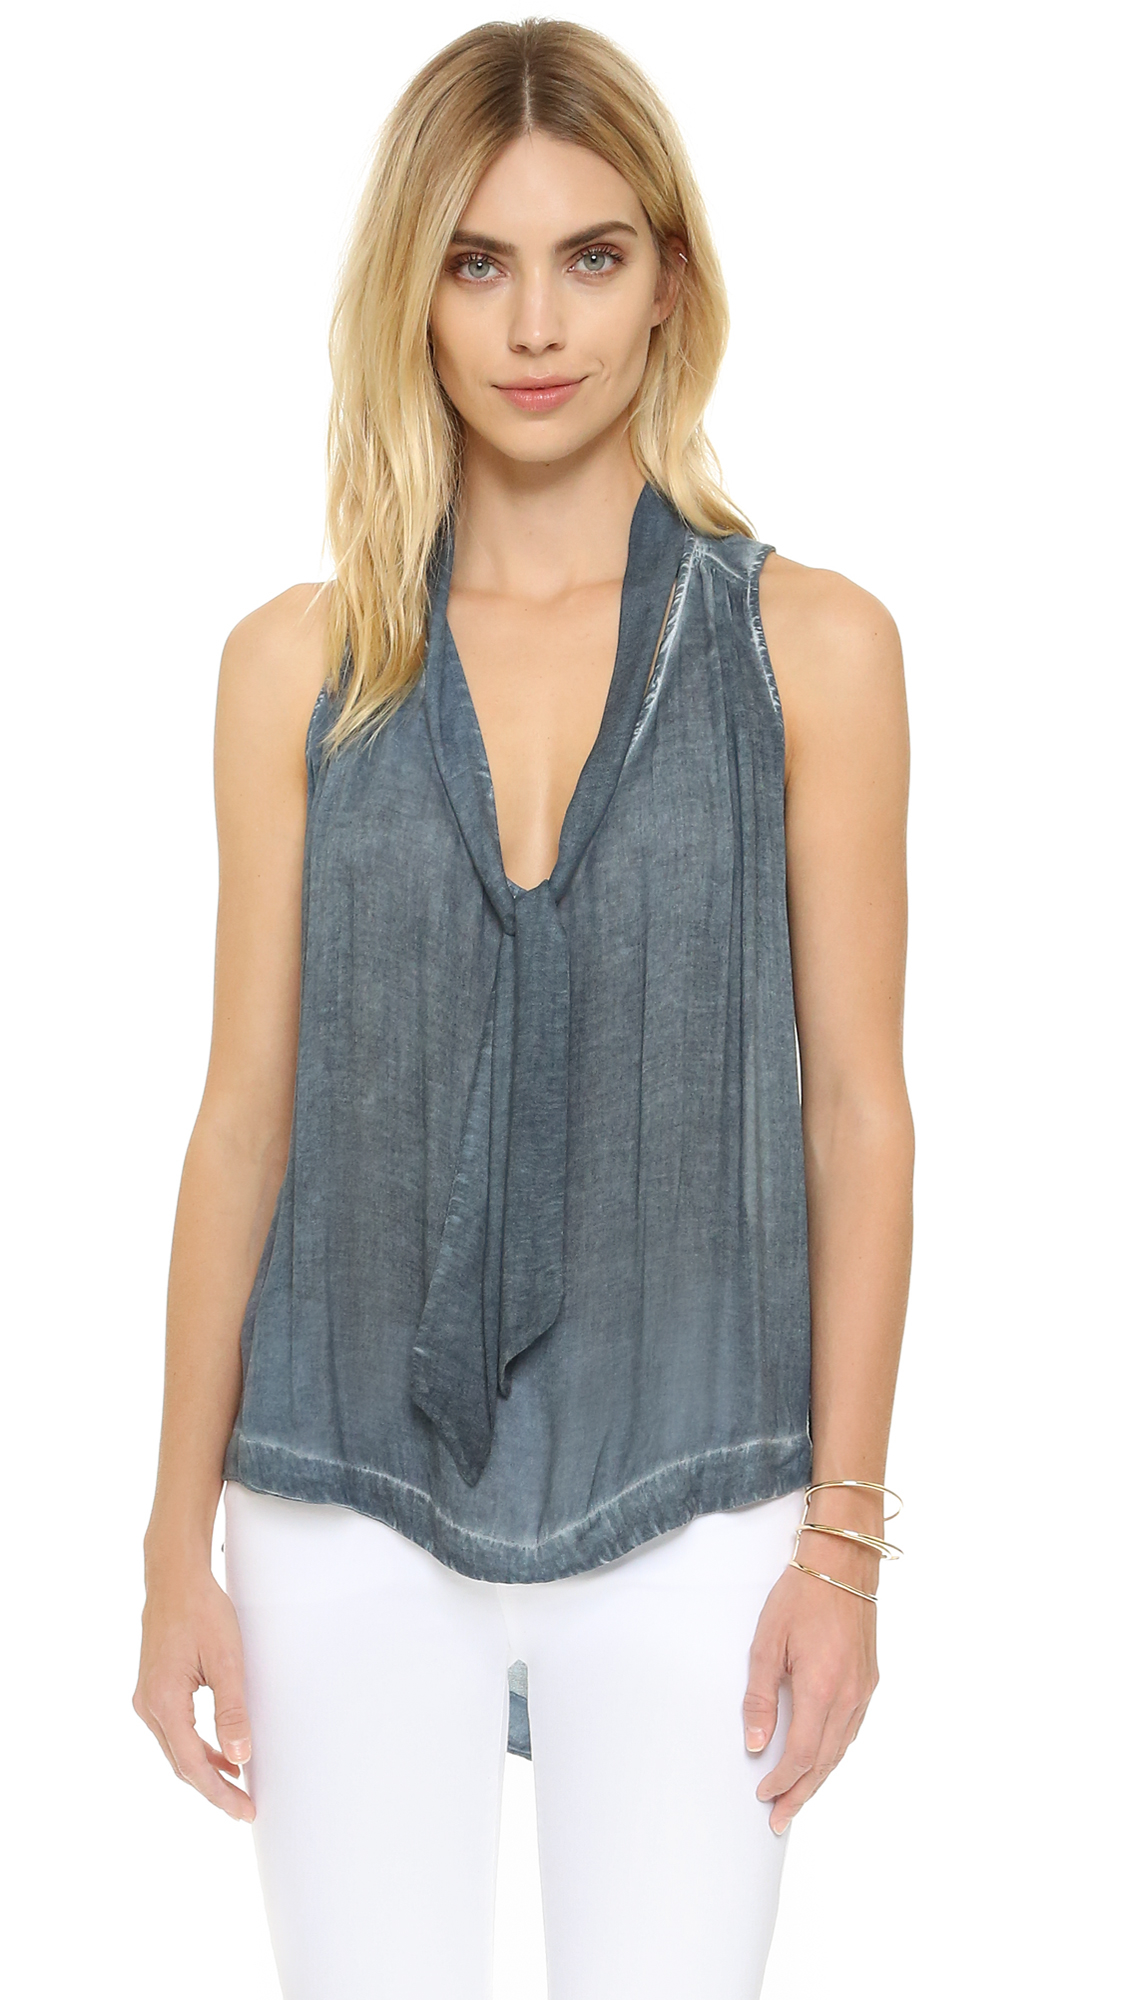 Lyst - Free People Sleeveless Tie Front Top in Blue d83327ece